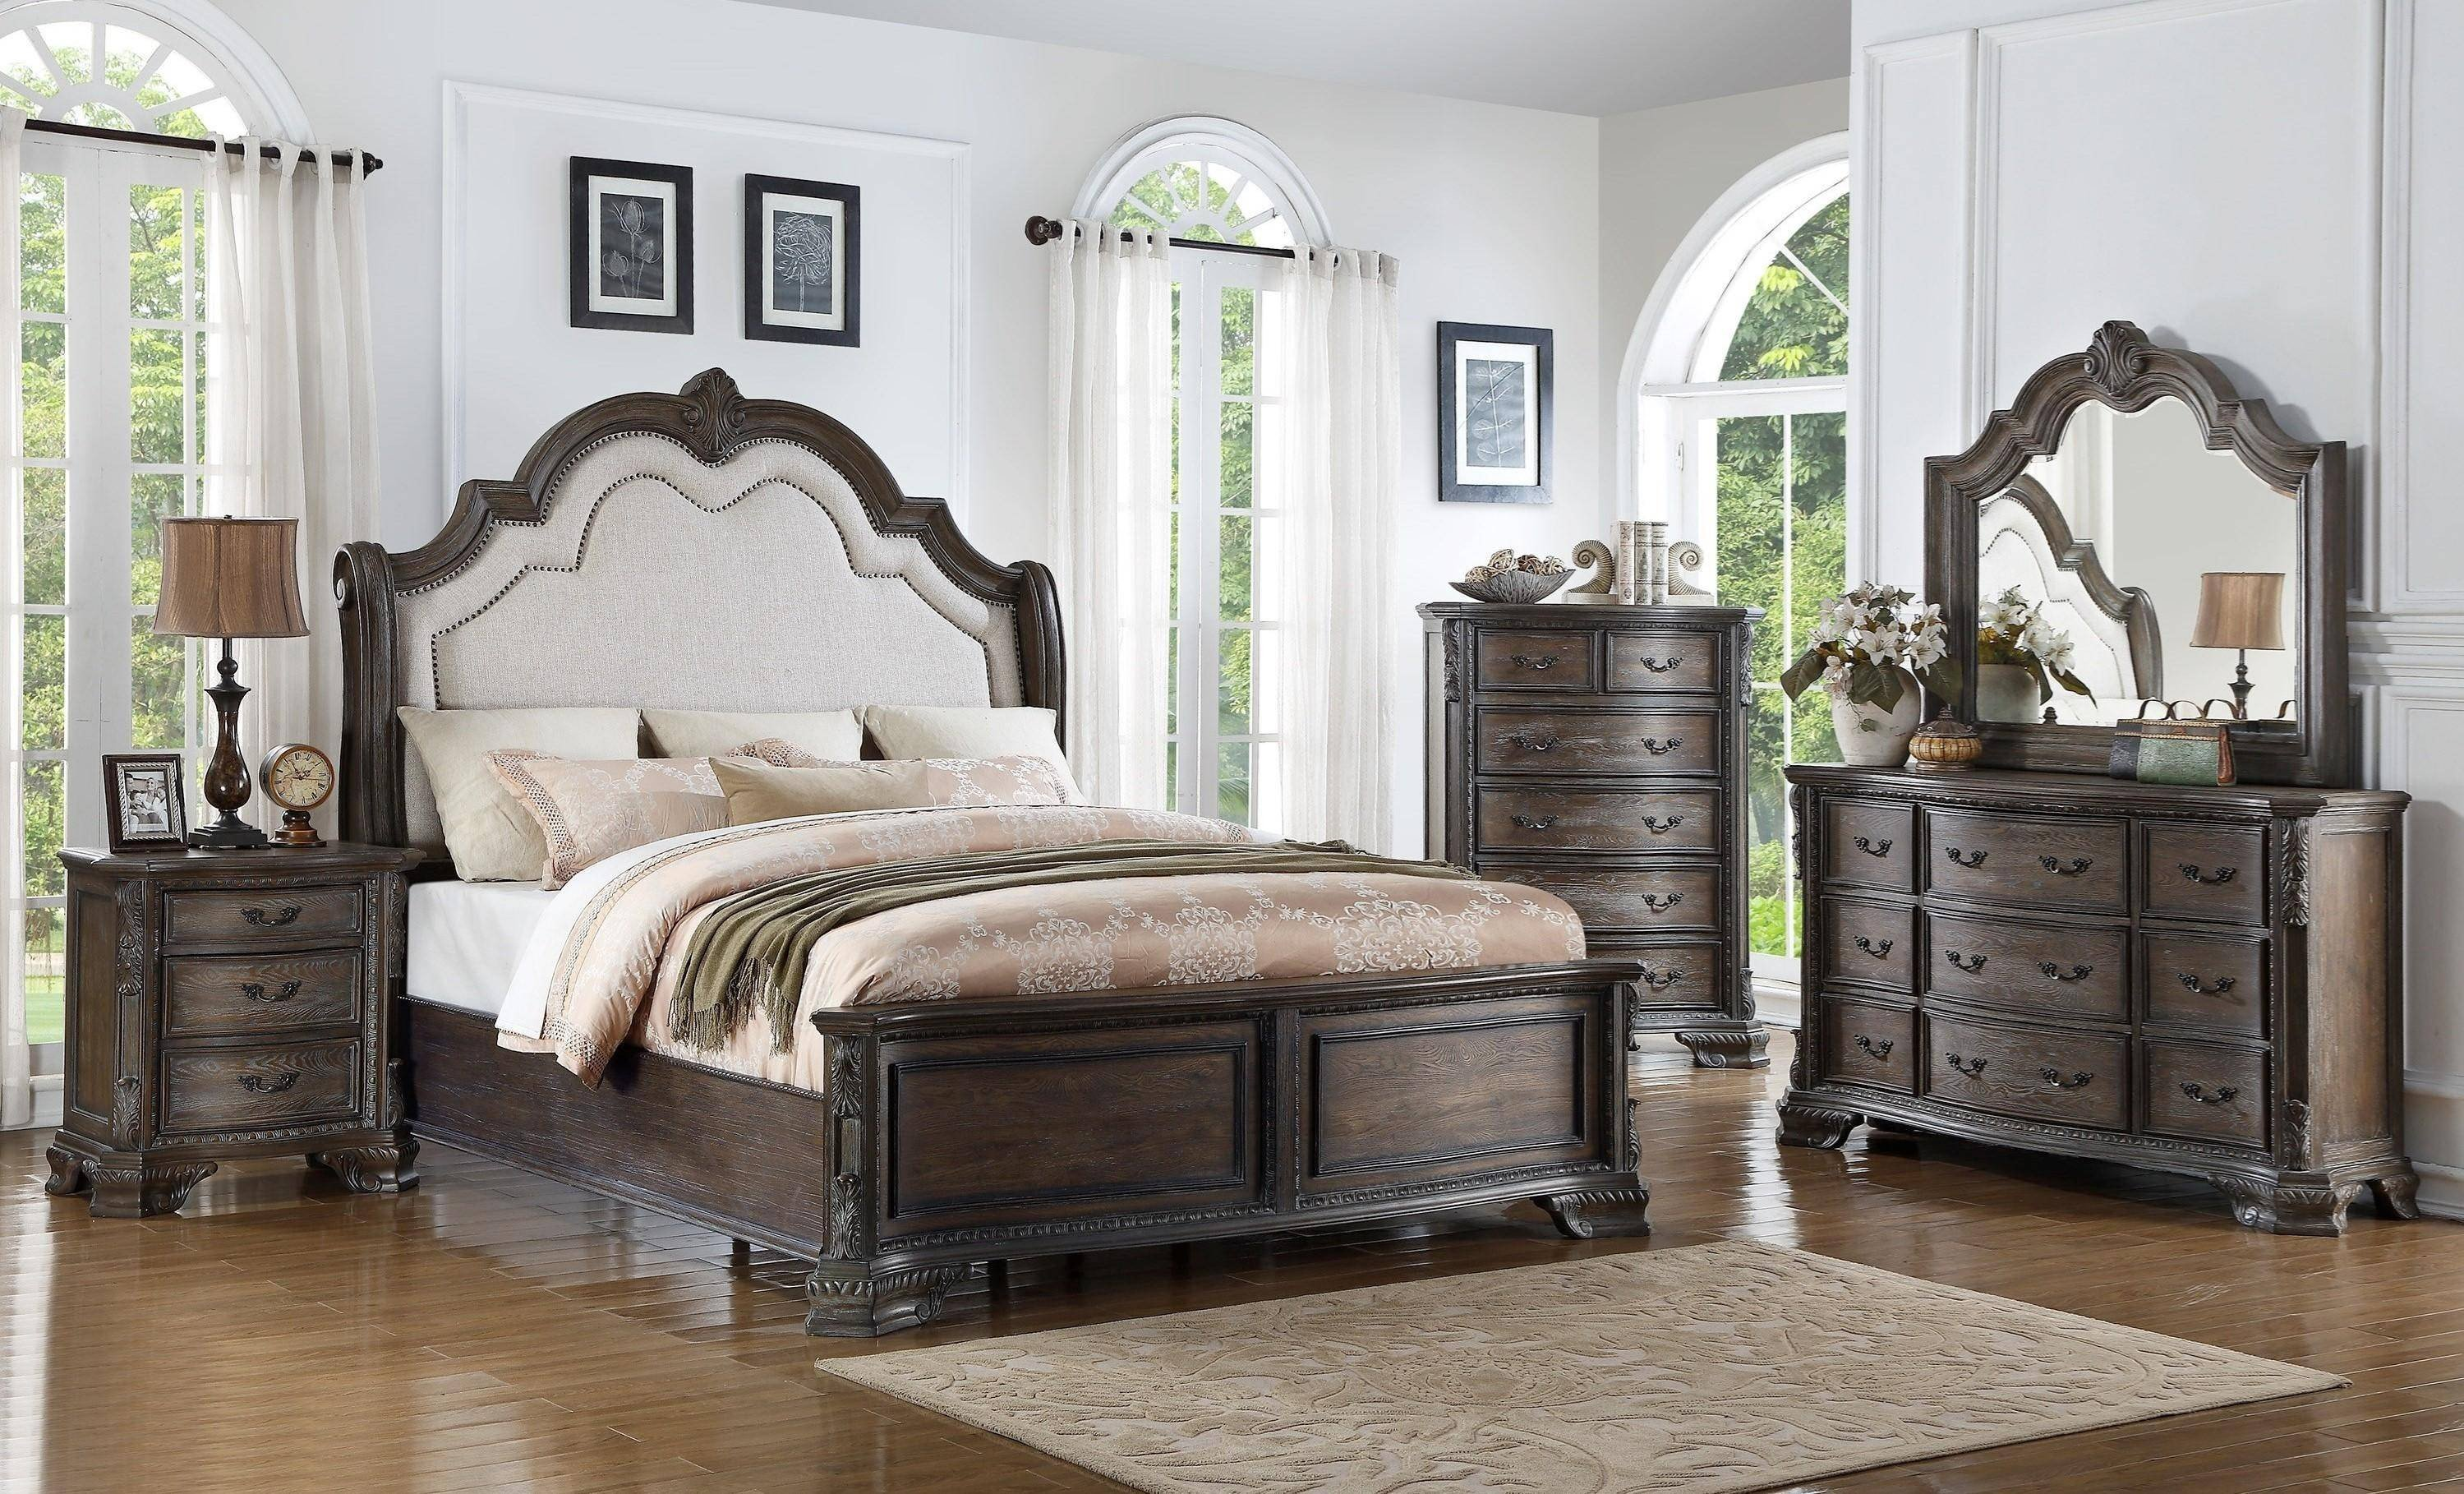 Wooden Bedroom Furniture Set Awesome Crown Mark B1120 Sheffield Queen Panel Bed In Gray Fabric